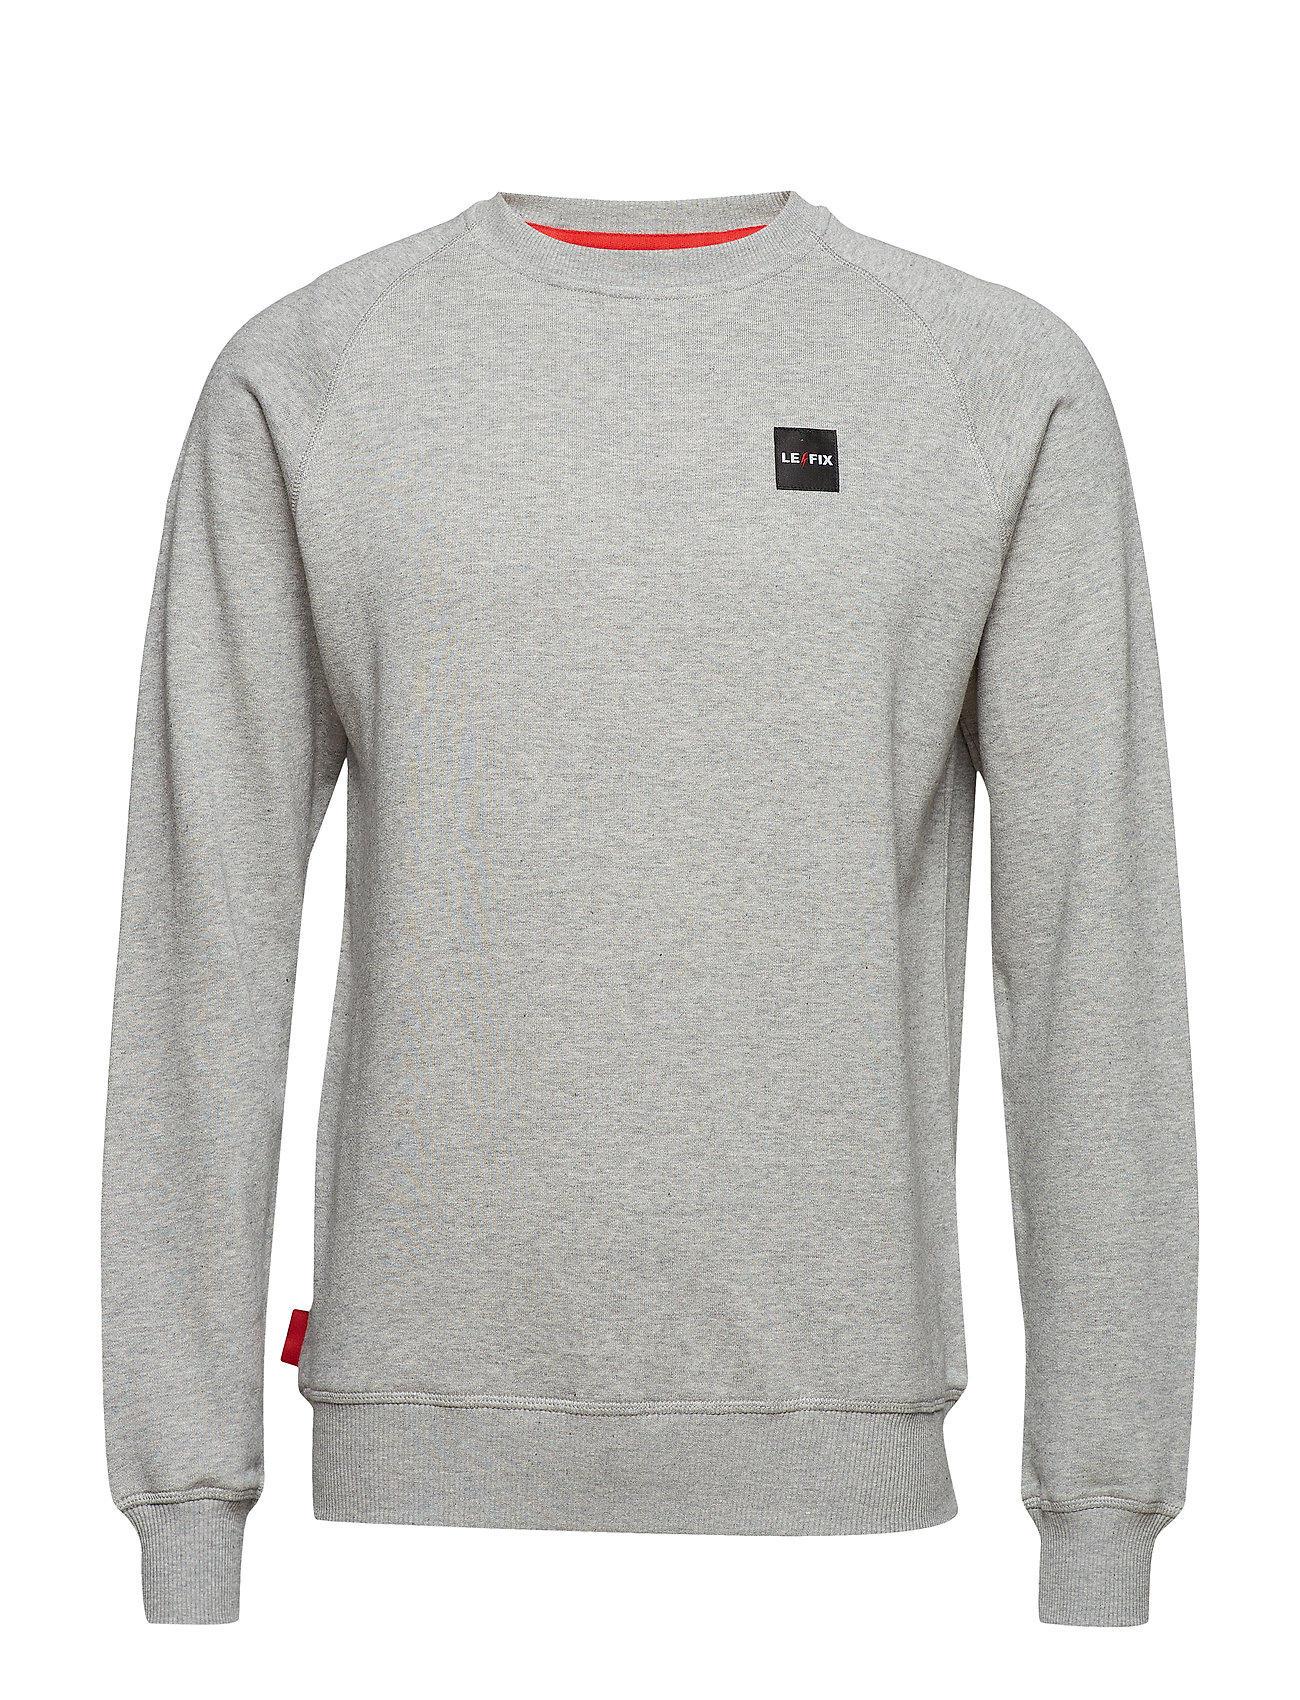 Le Fix LF Patch Crew - GREY MEL.